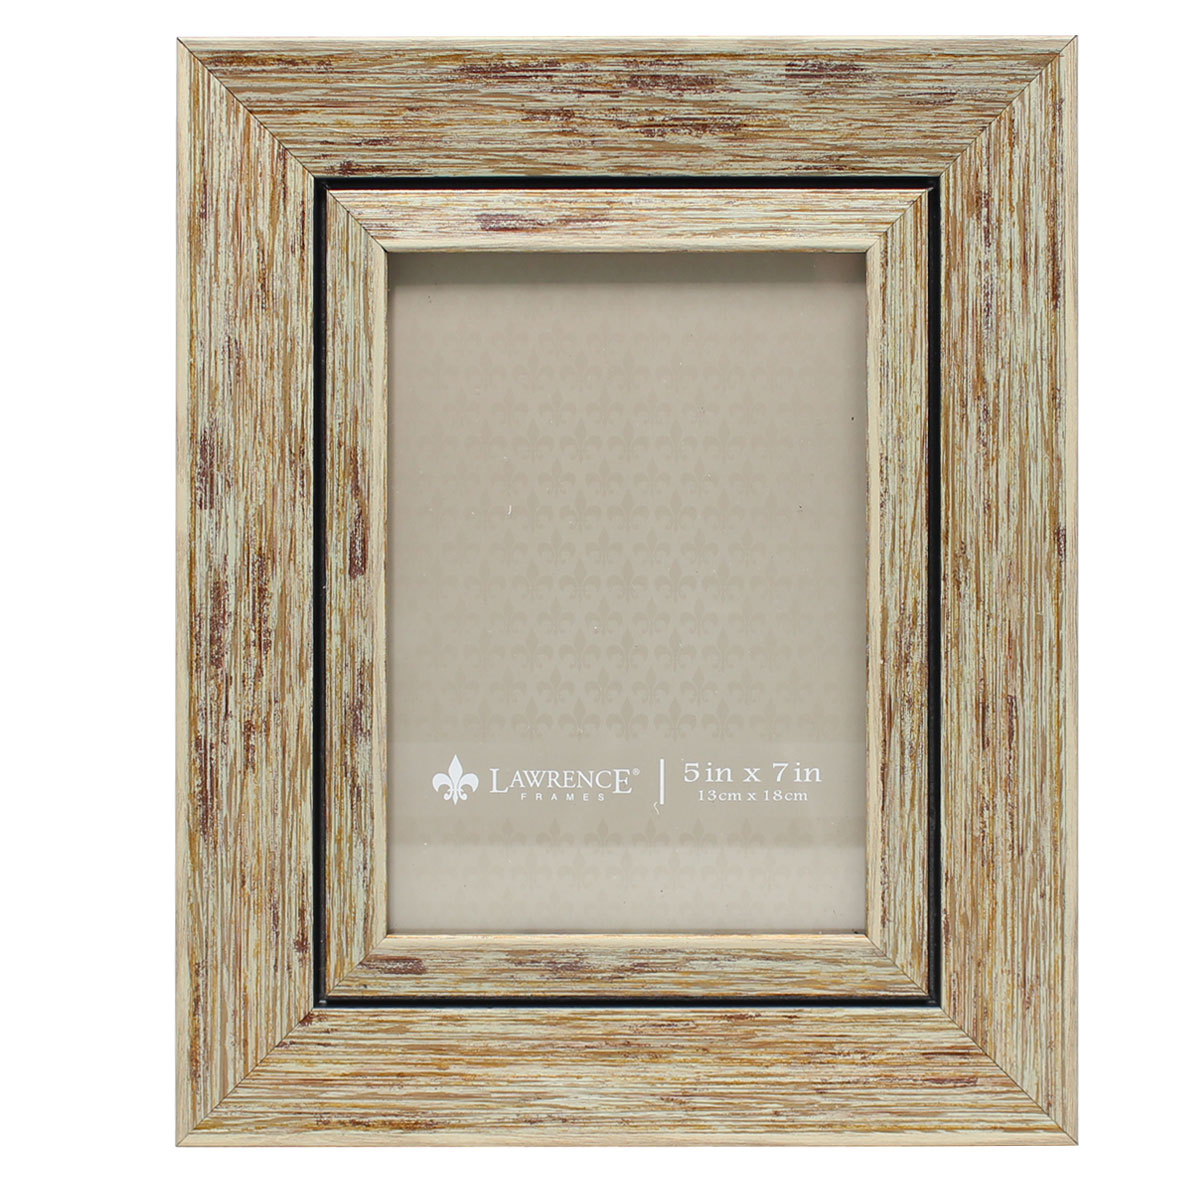 5x7 Weathered Natural Decorative Picture Frame by Lawrence Frames